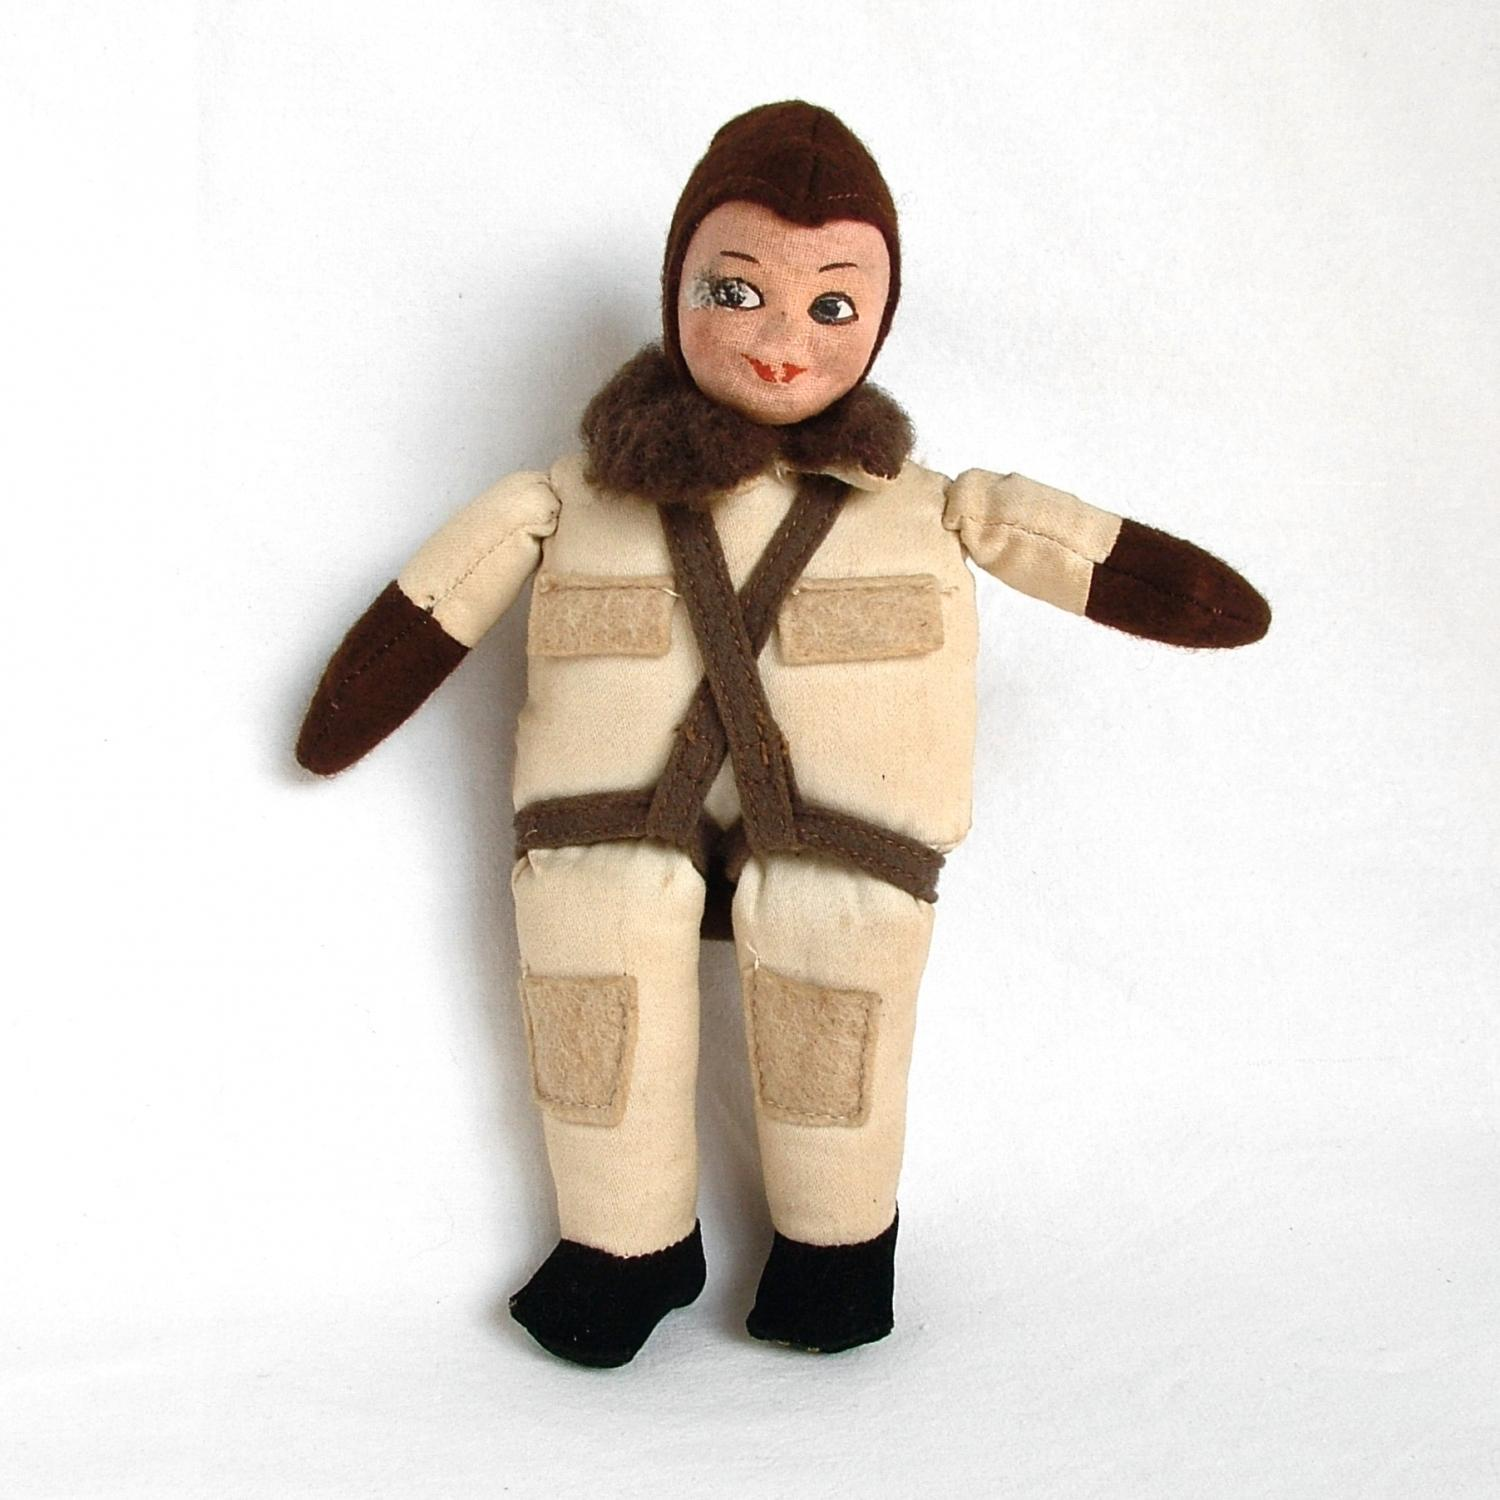 RAF Comforts Committee Doll